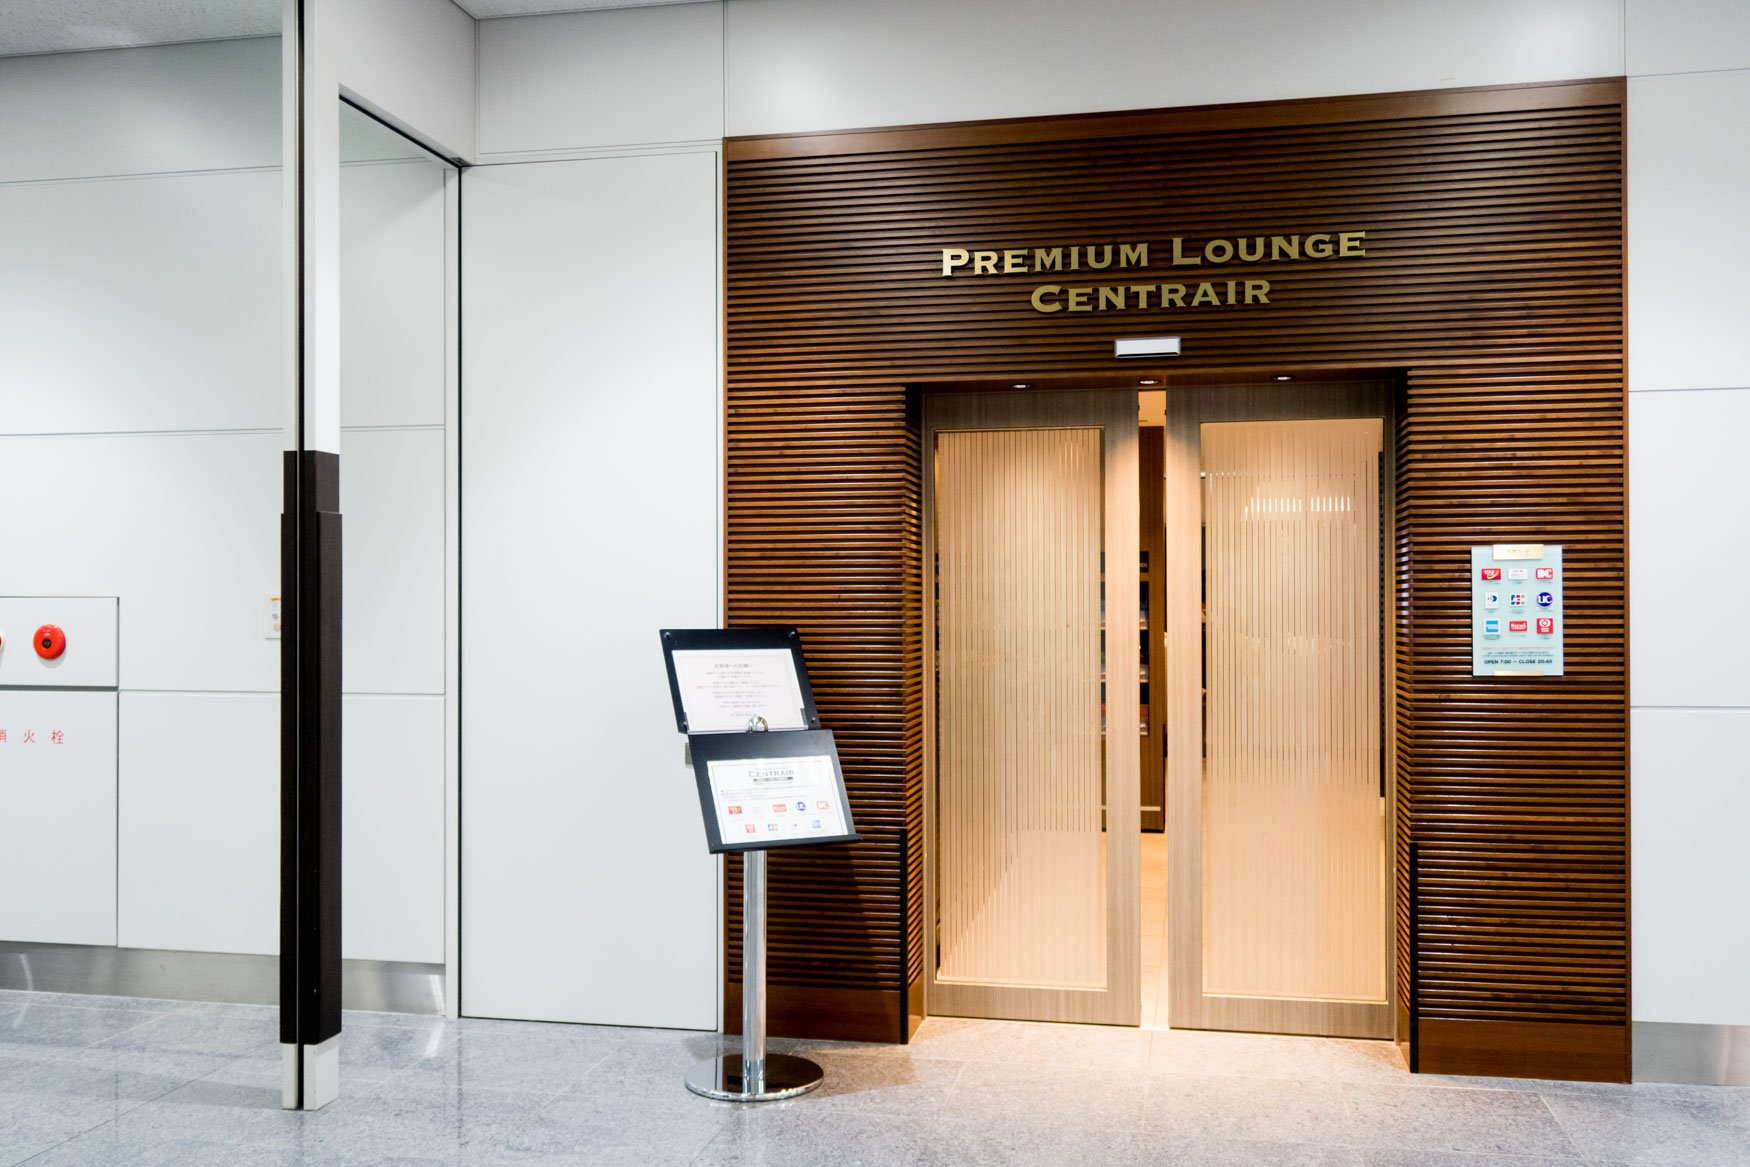 Premium Lounge Centrair Entrance